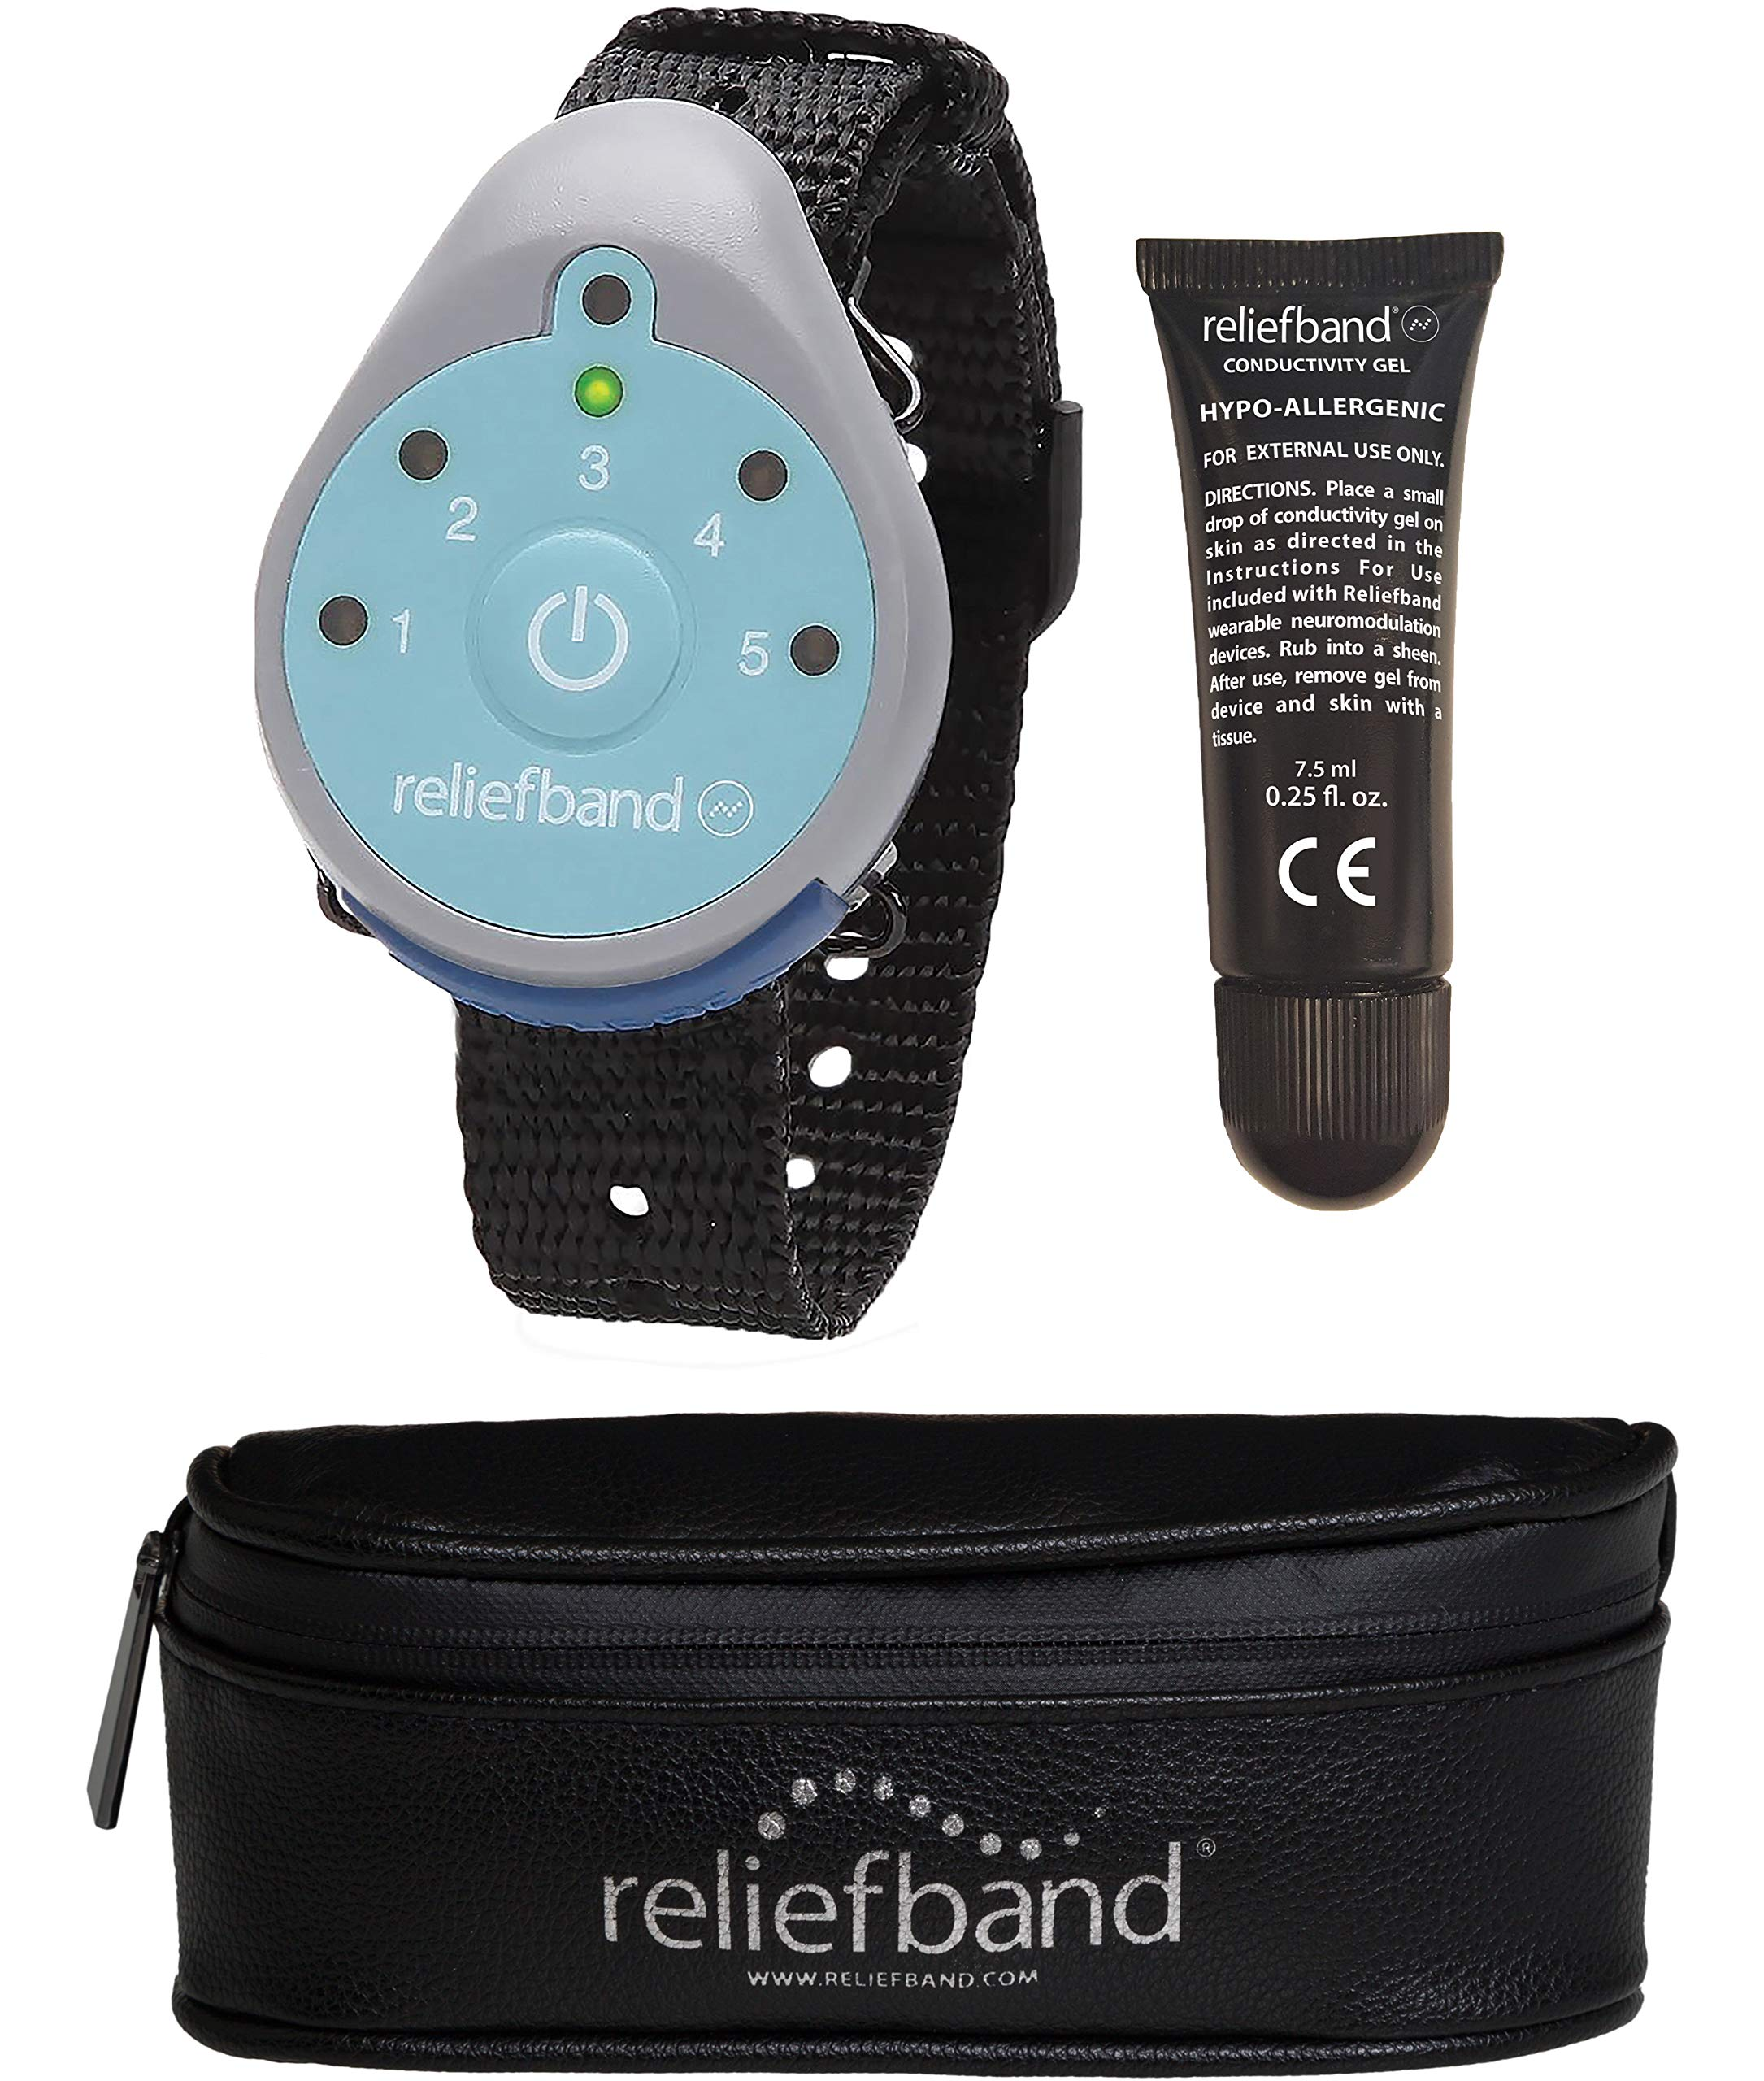 Reliefband 1.5 Motion Sickness Wristband w/ 1 Gel Tube and Carrying Pouch - Easy-to-Use, Fast, Drug-Free Nausea Relief Band Helps w/Morning Sickness, Nausea, Sea Sickness, Retching, Vomiting by Reliefband